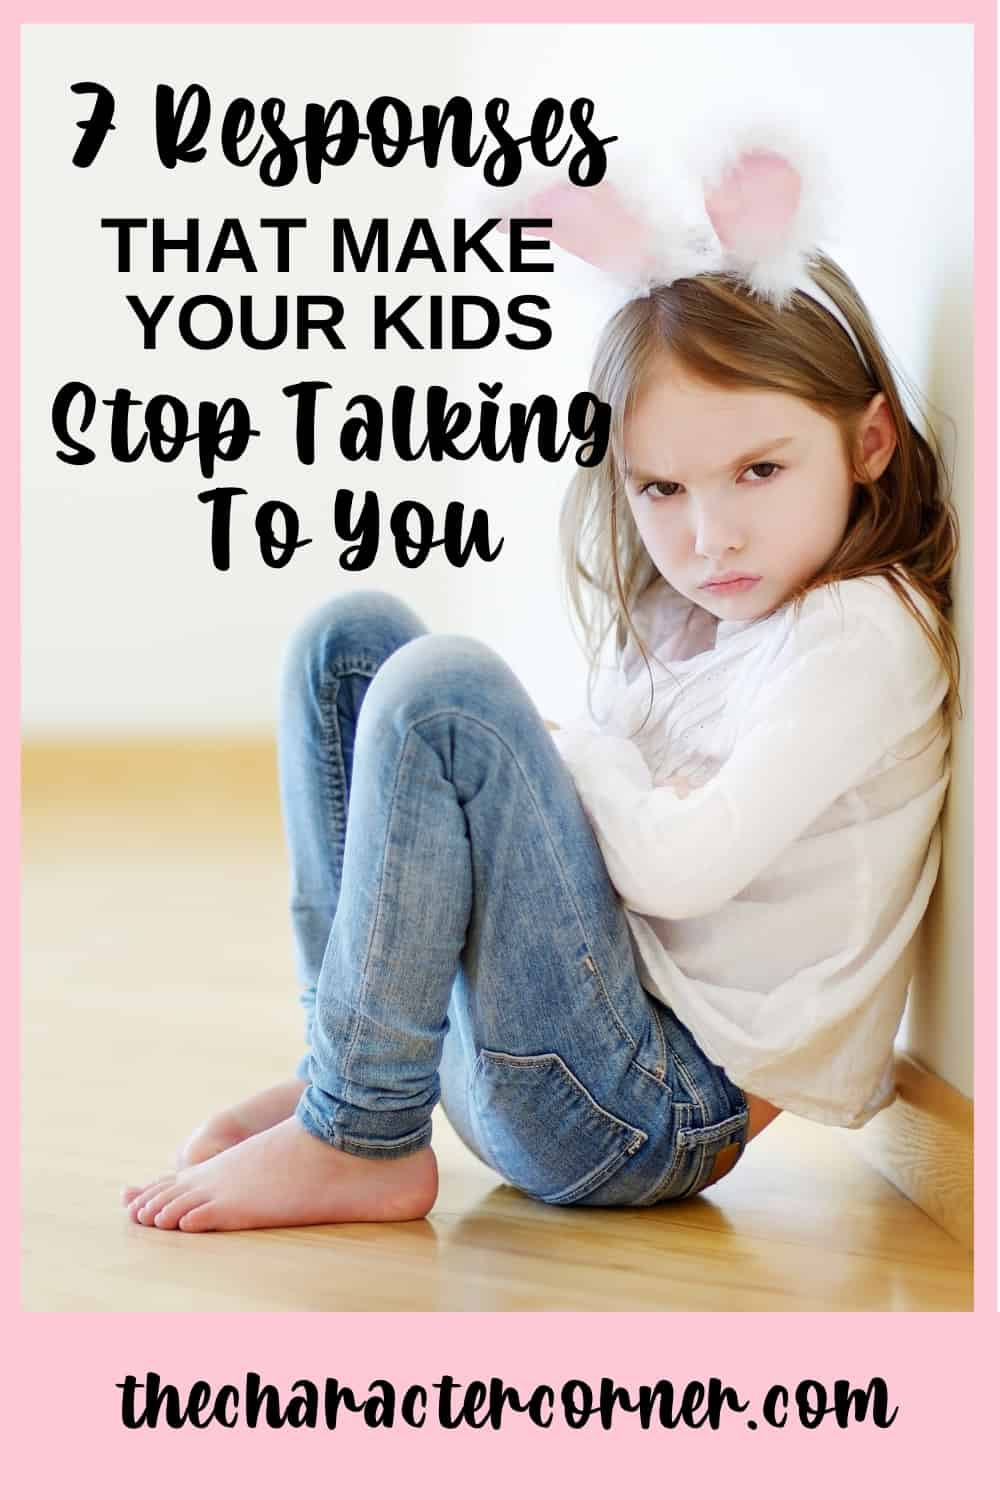 child sitting on floor angry text on image reads:7 Responses That Make Your Kids Stop Talking To You